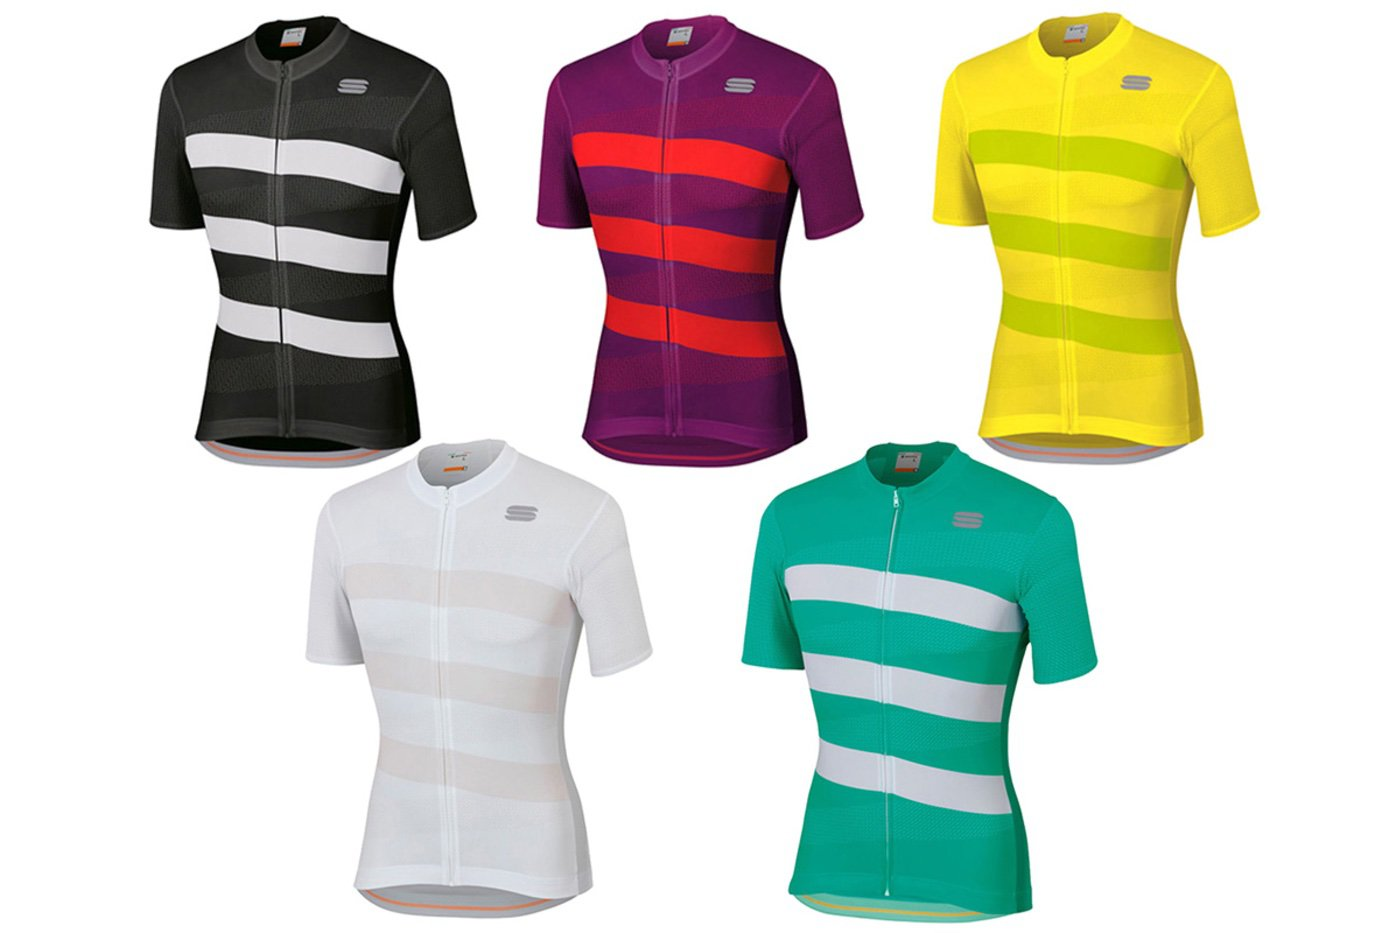 Maillots de verano Sportful Team 2.0 Ribbon 2019